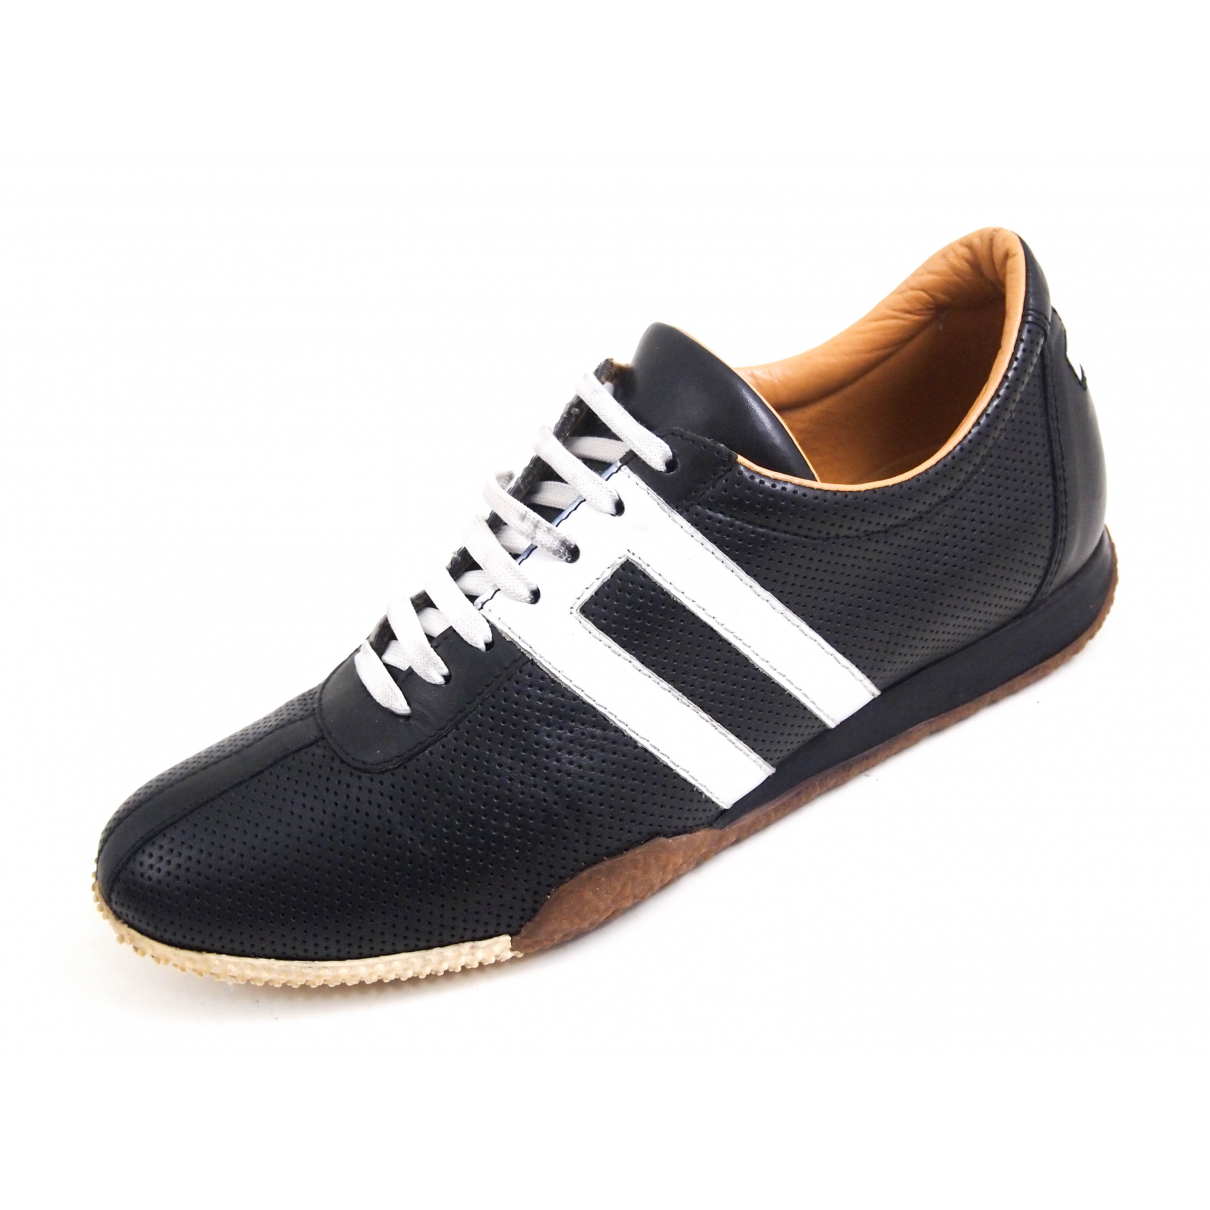 Bally N Black Leather Trainers for Women 36.5 EU